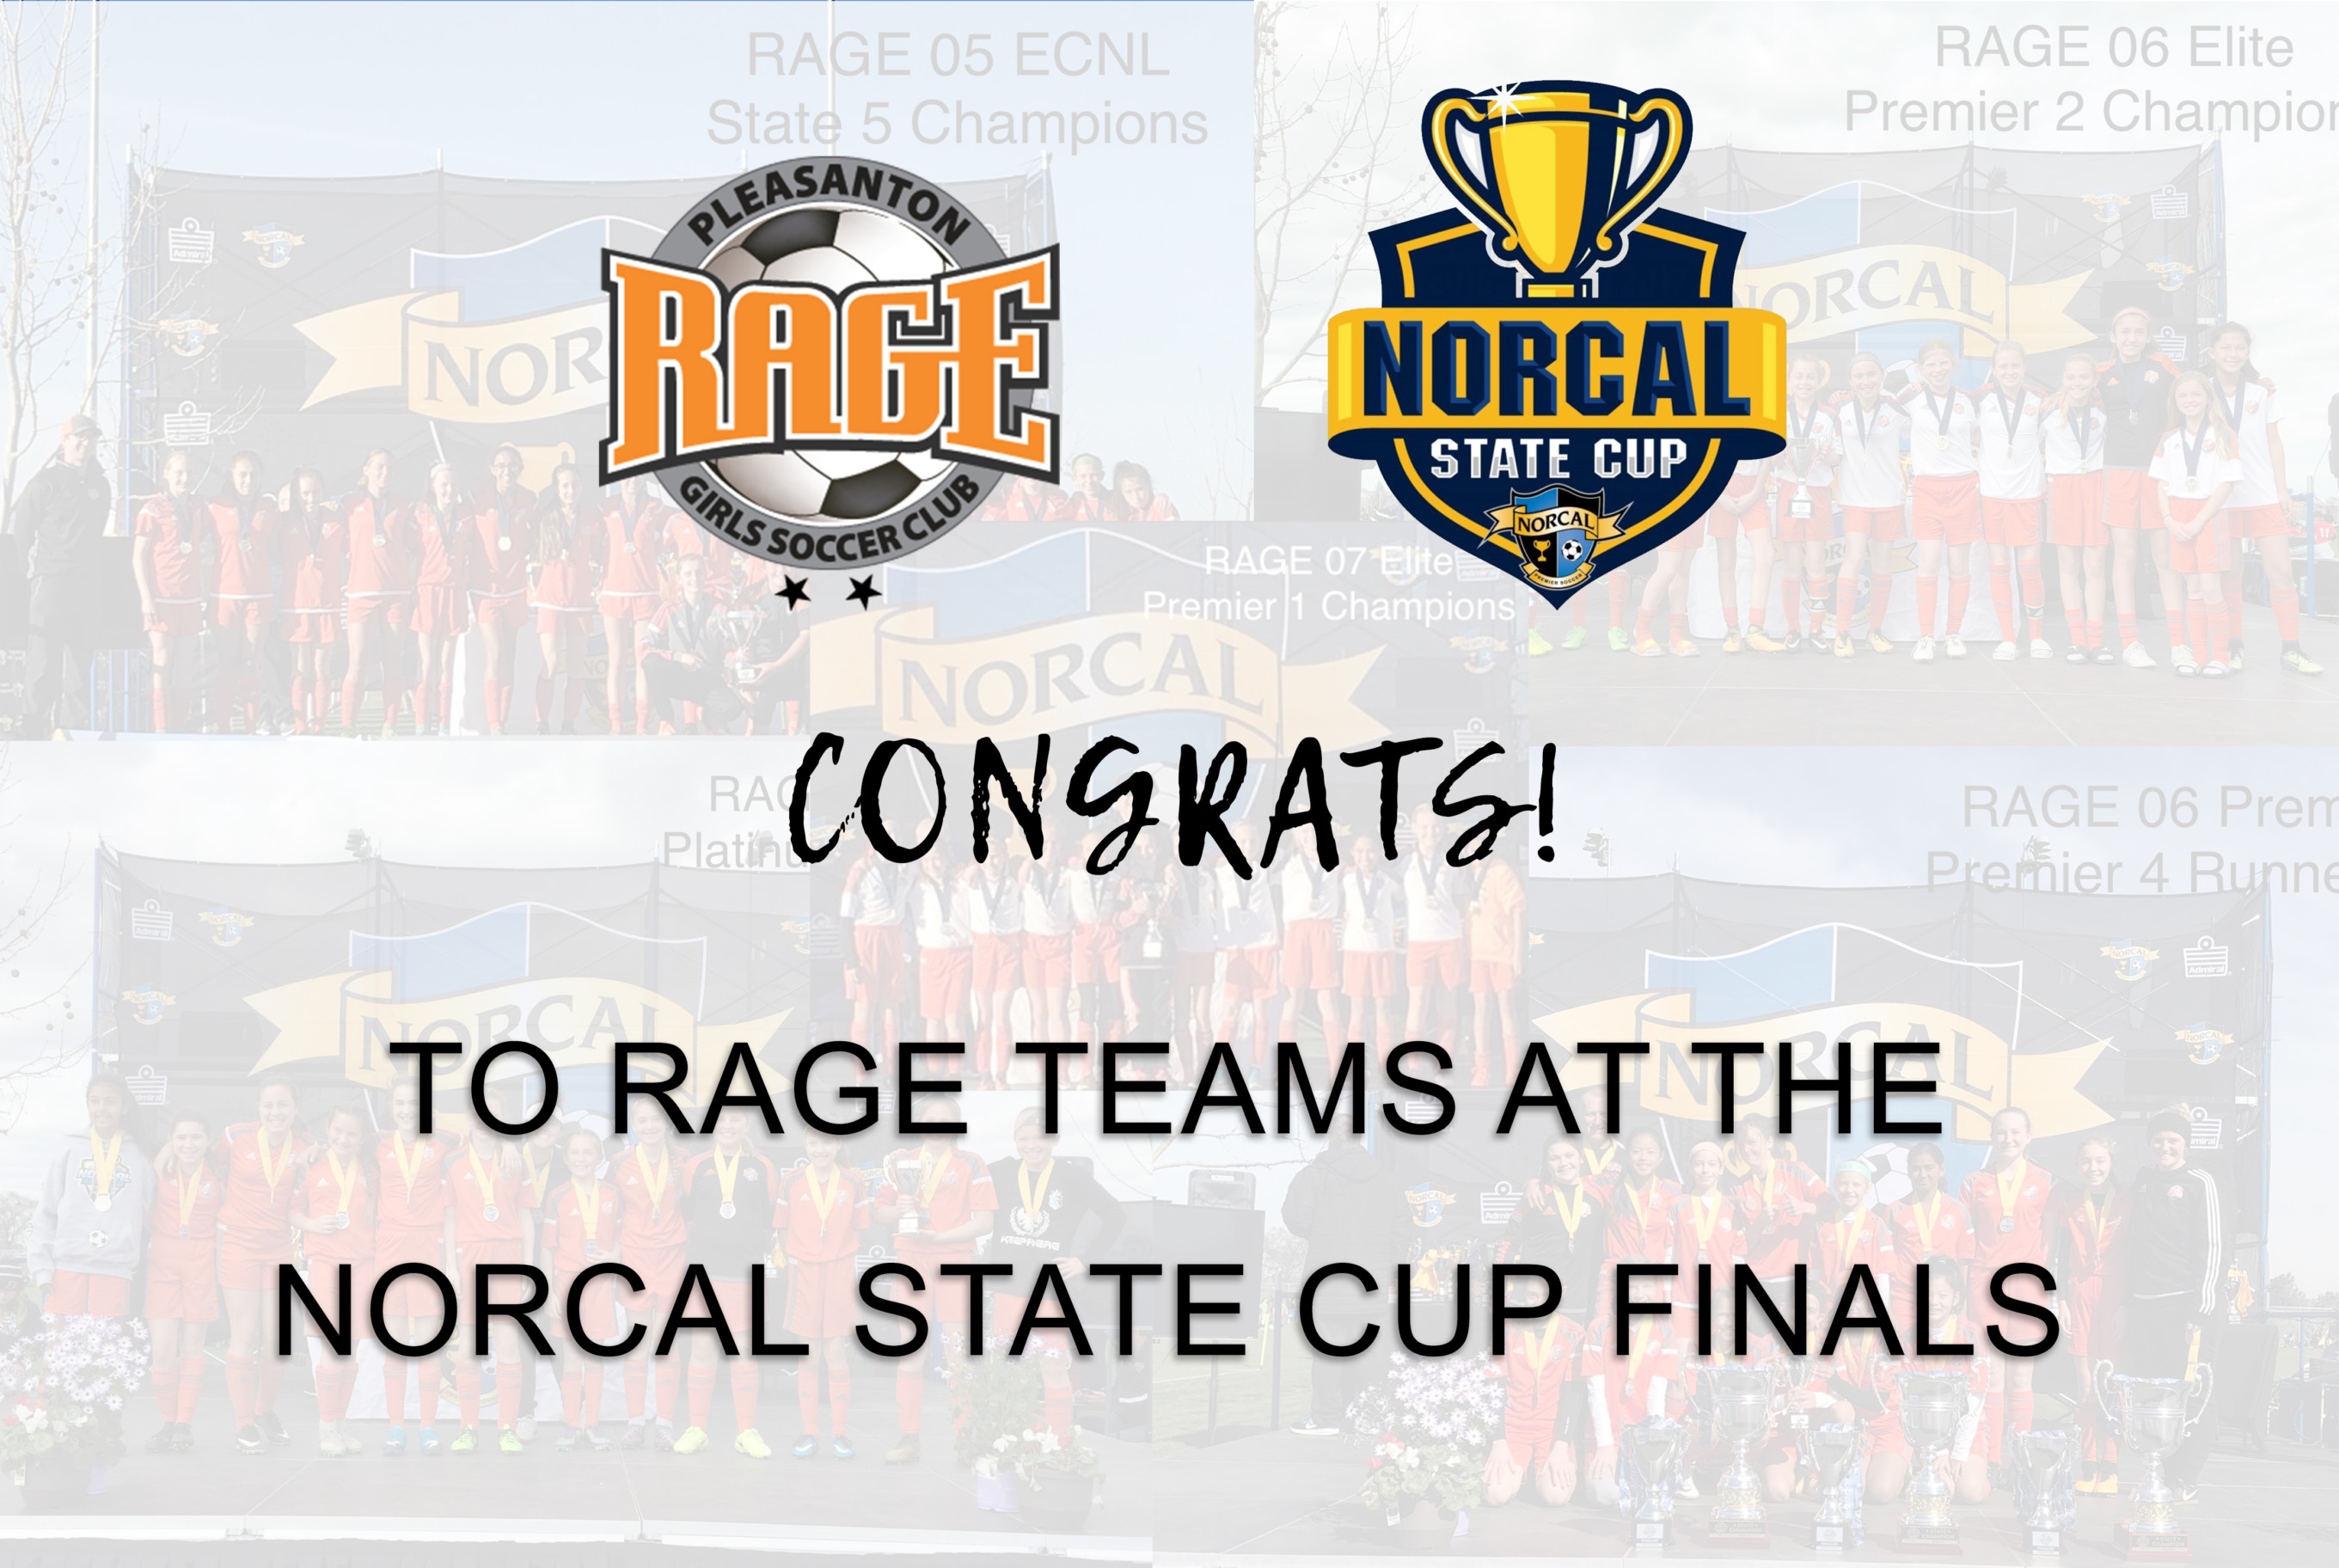 Norcal State Cup congrats